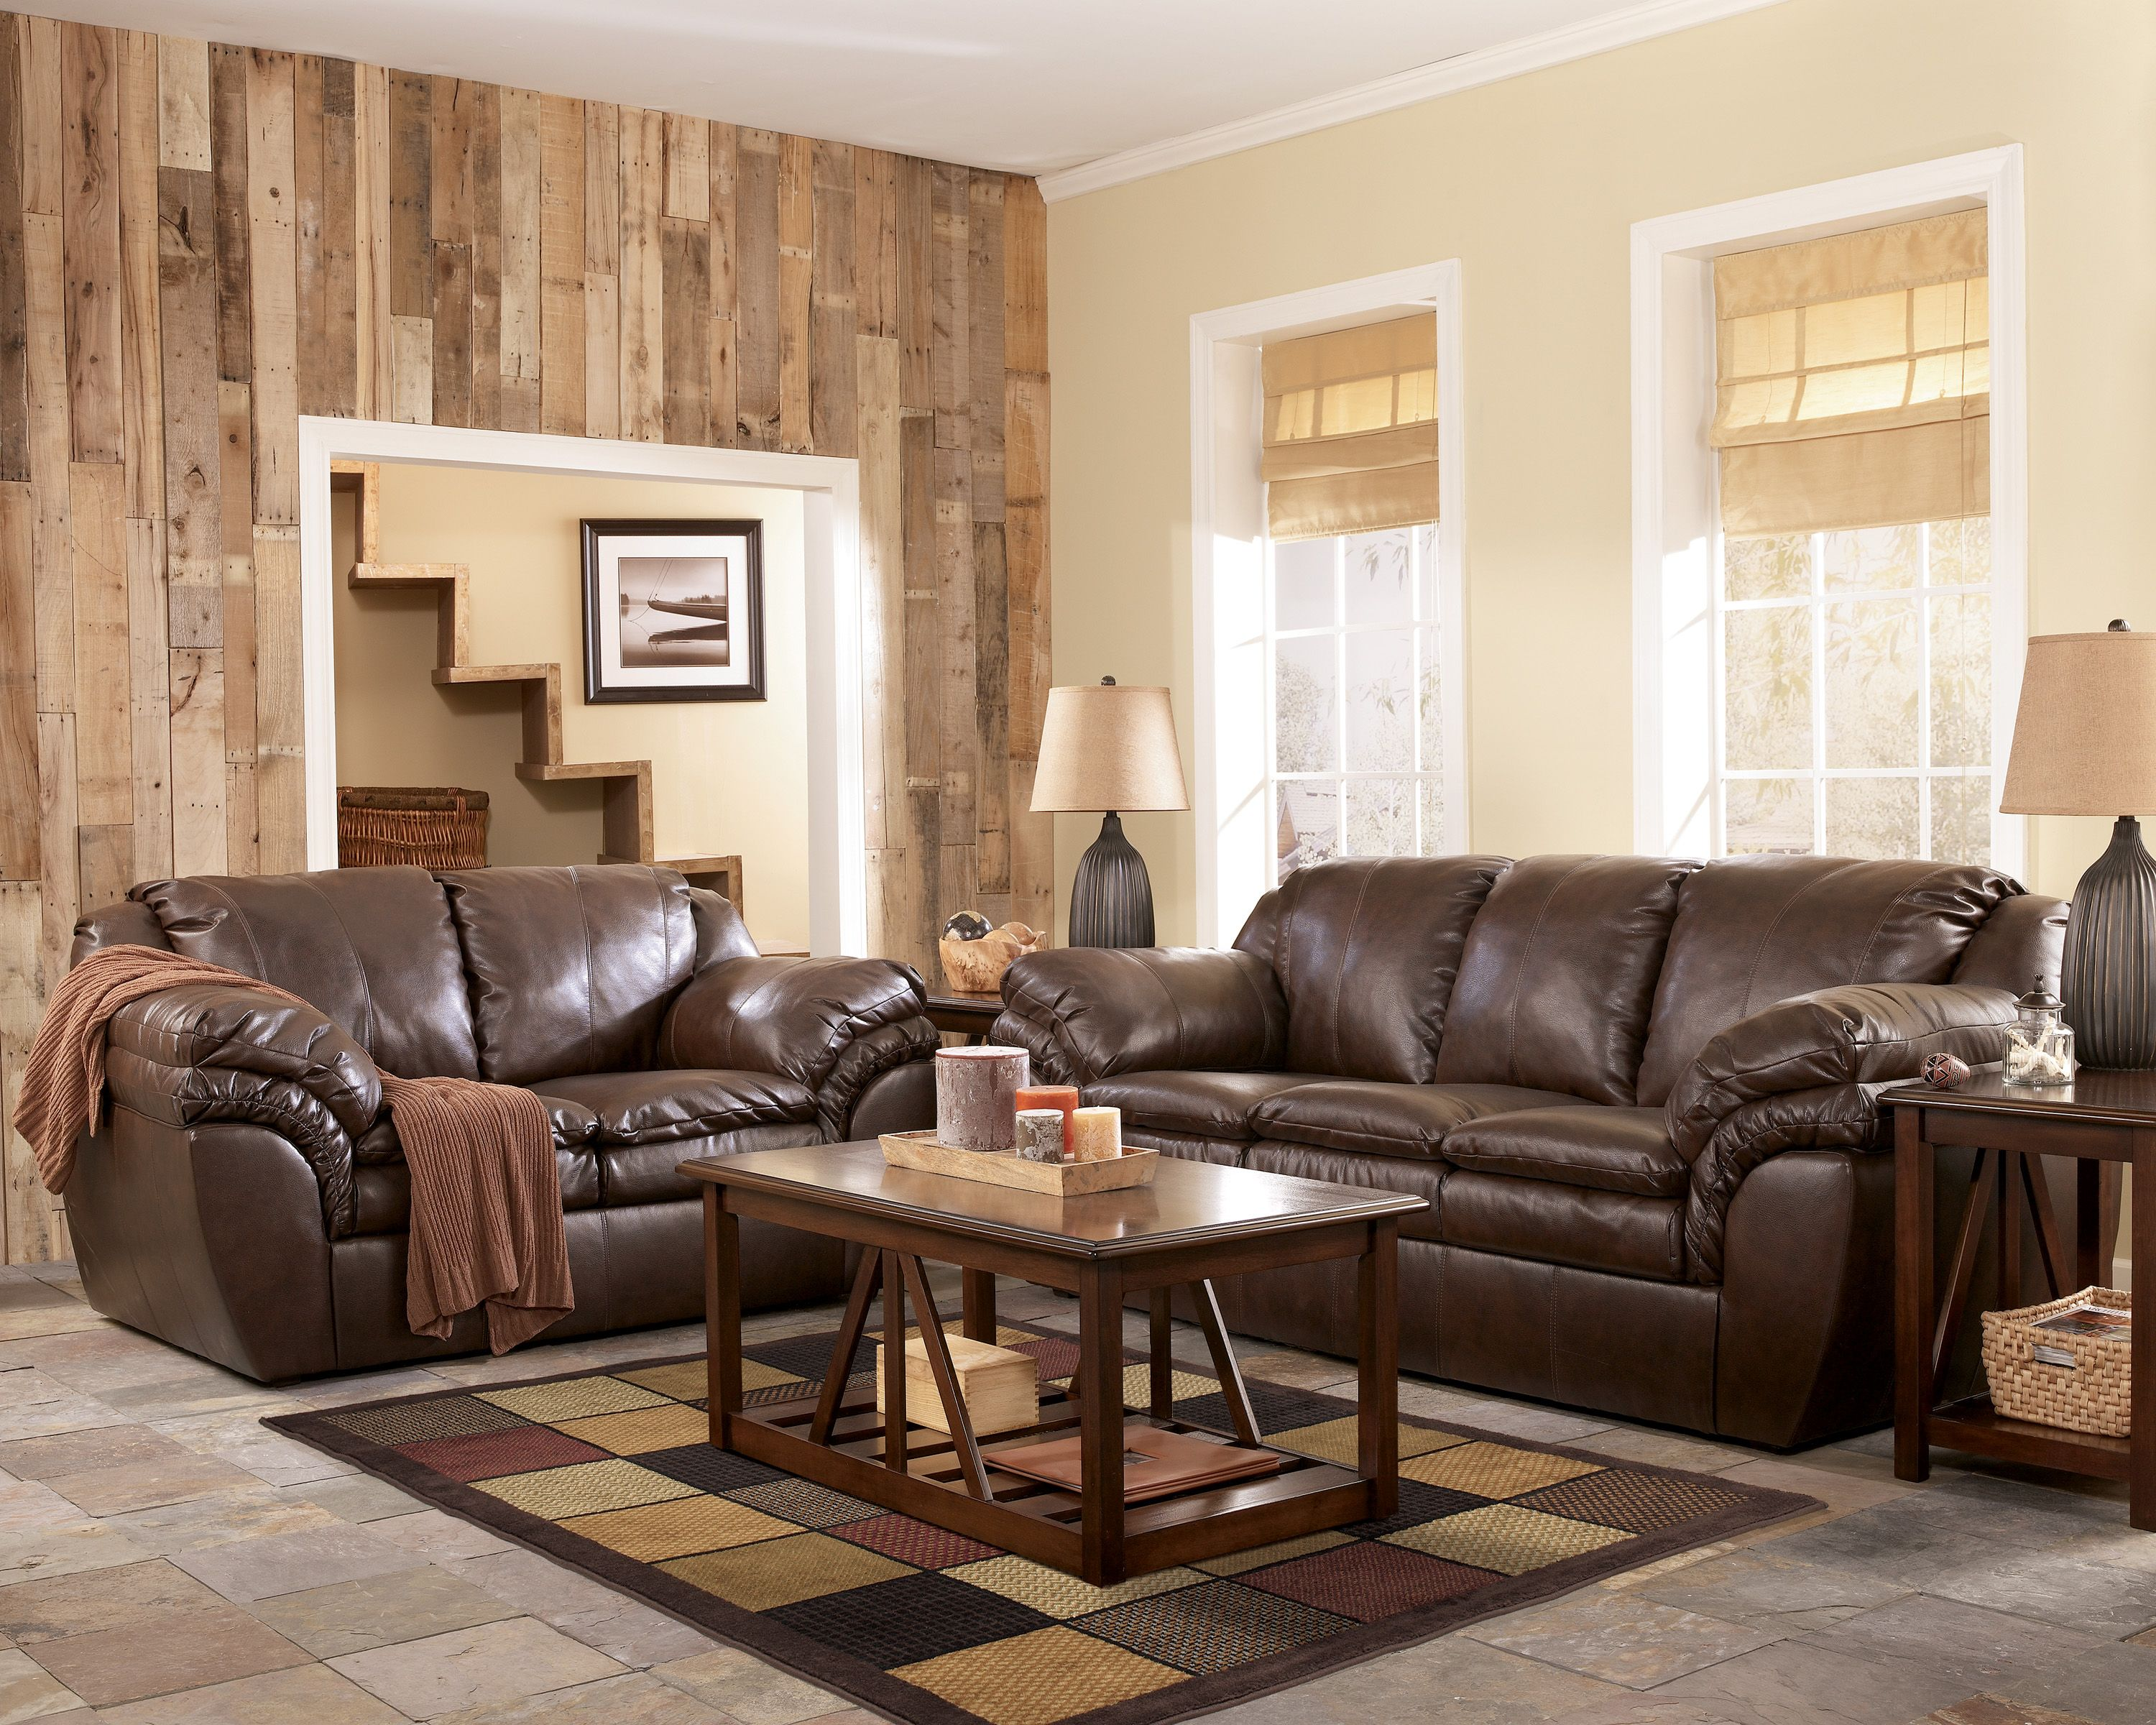 ashley furniture living room sets prices persian rug rooms leather couch and loveseat google search